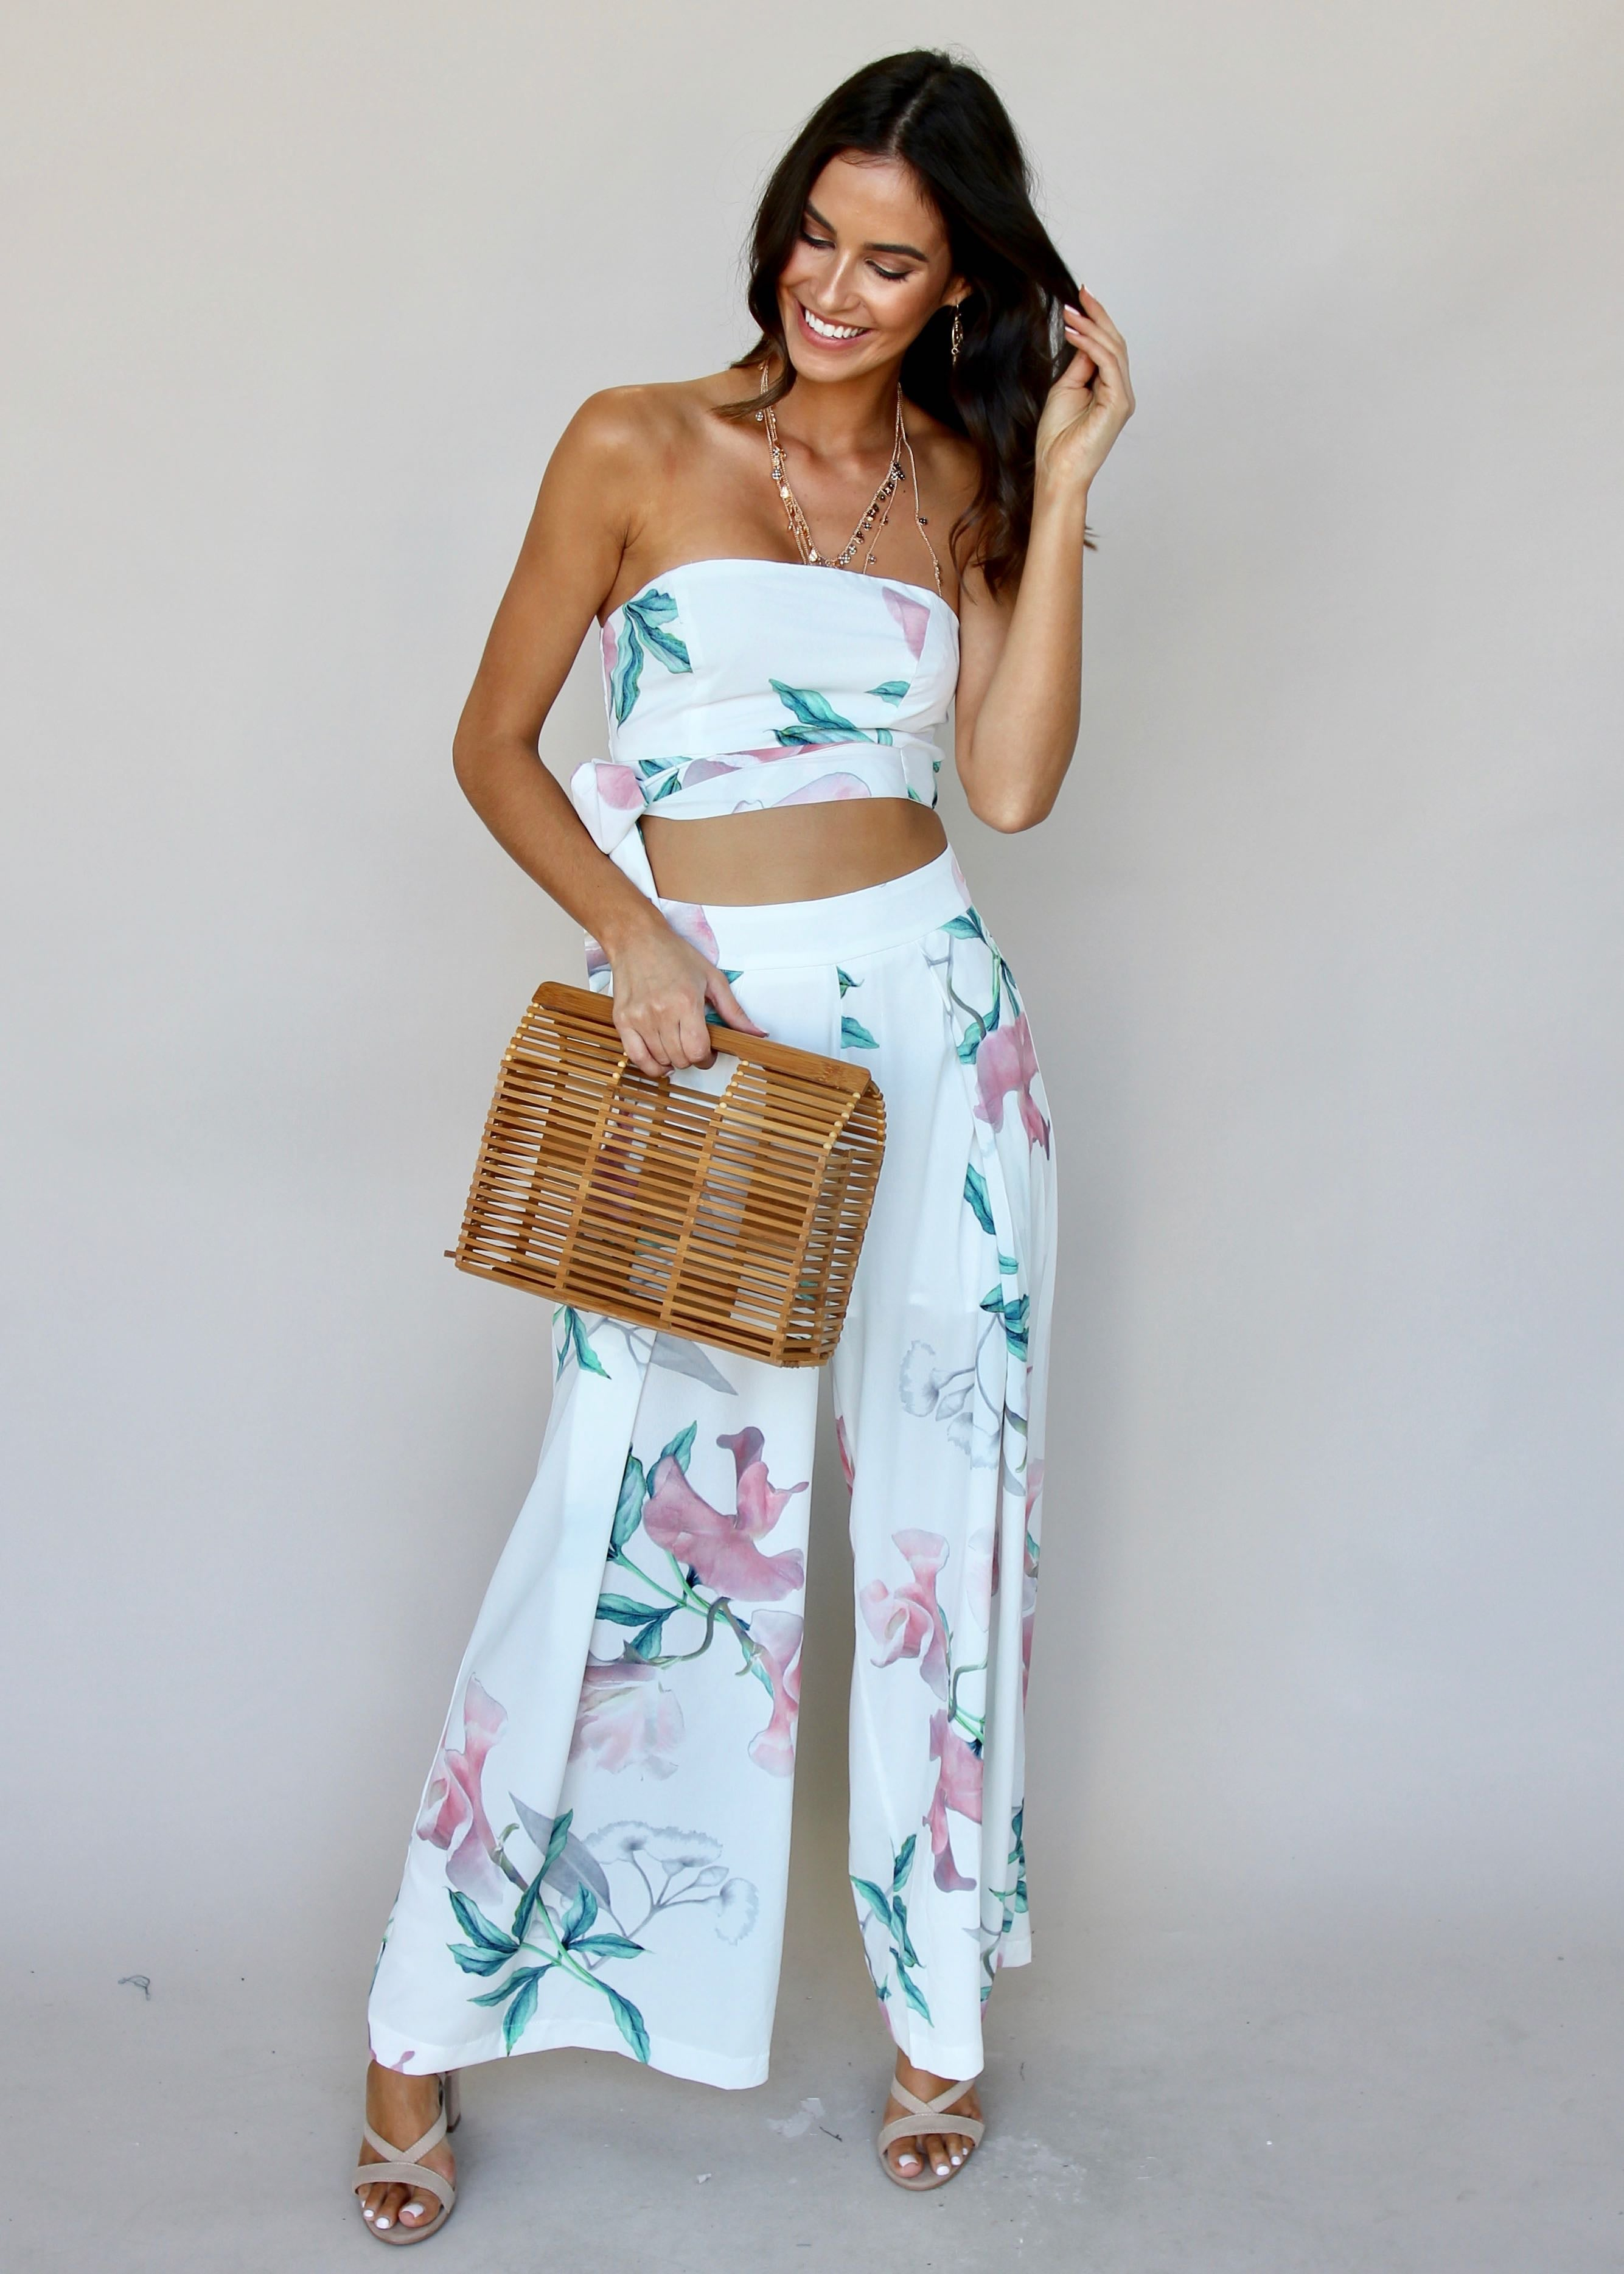 Above Your Love 2-Piece Set - White Tropical